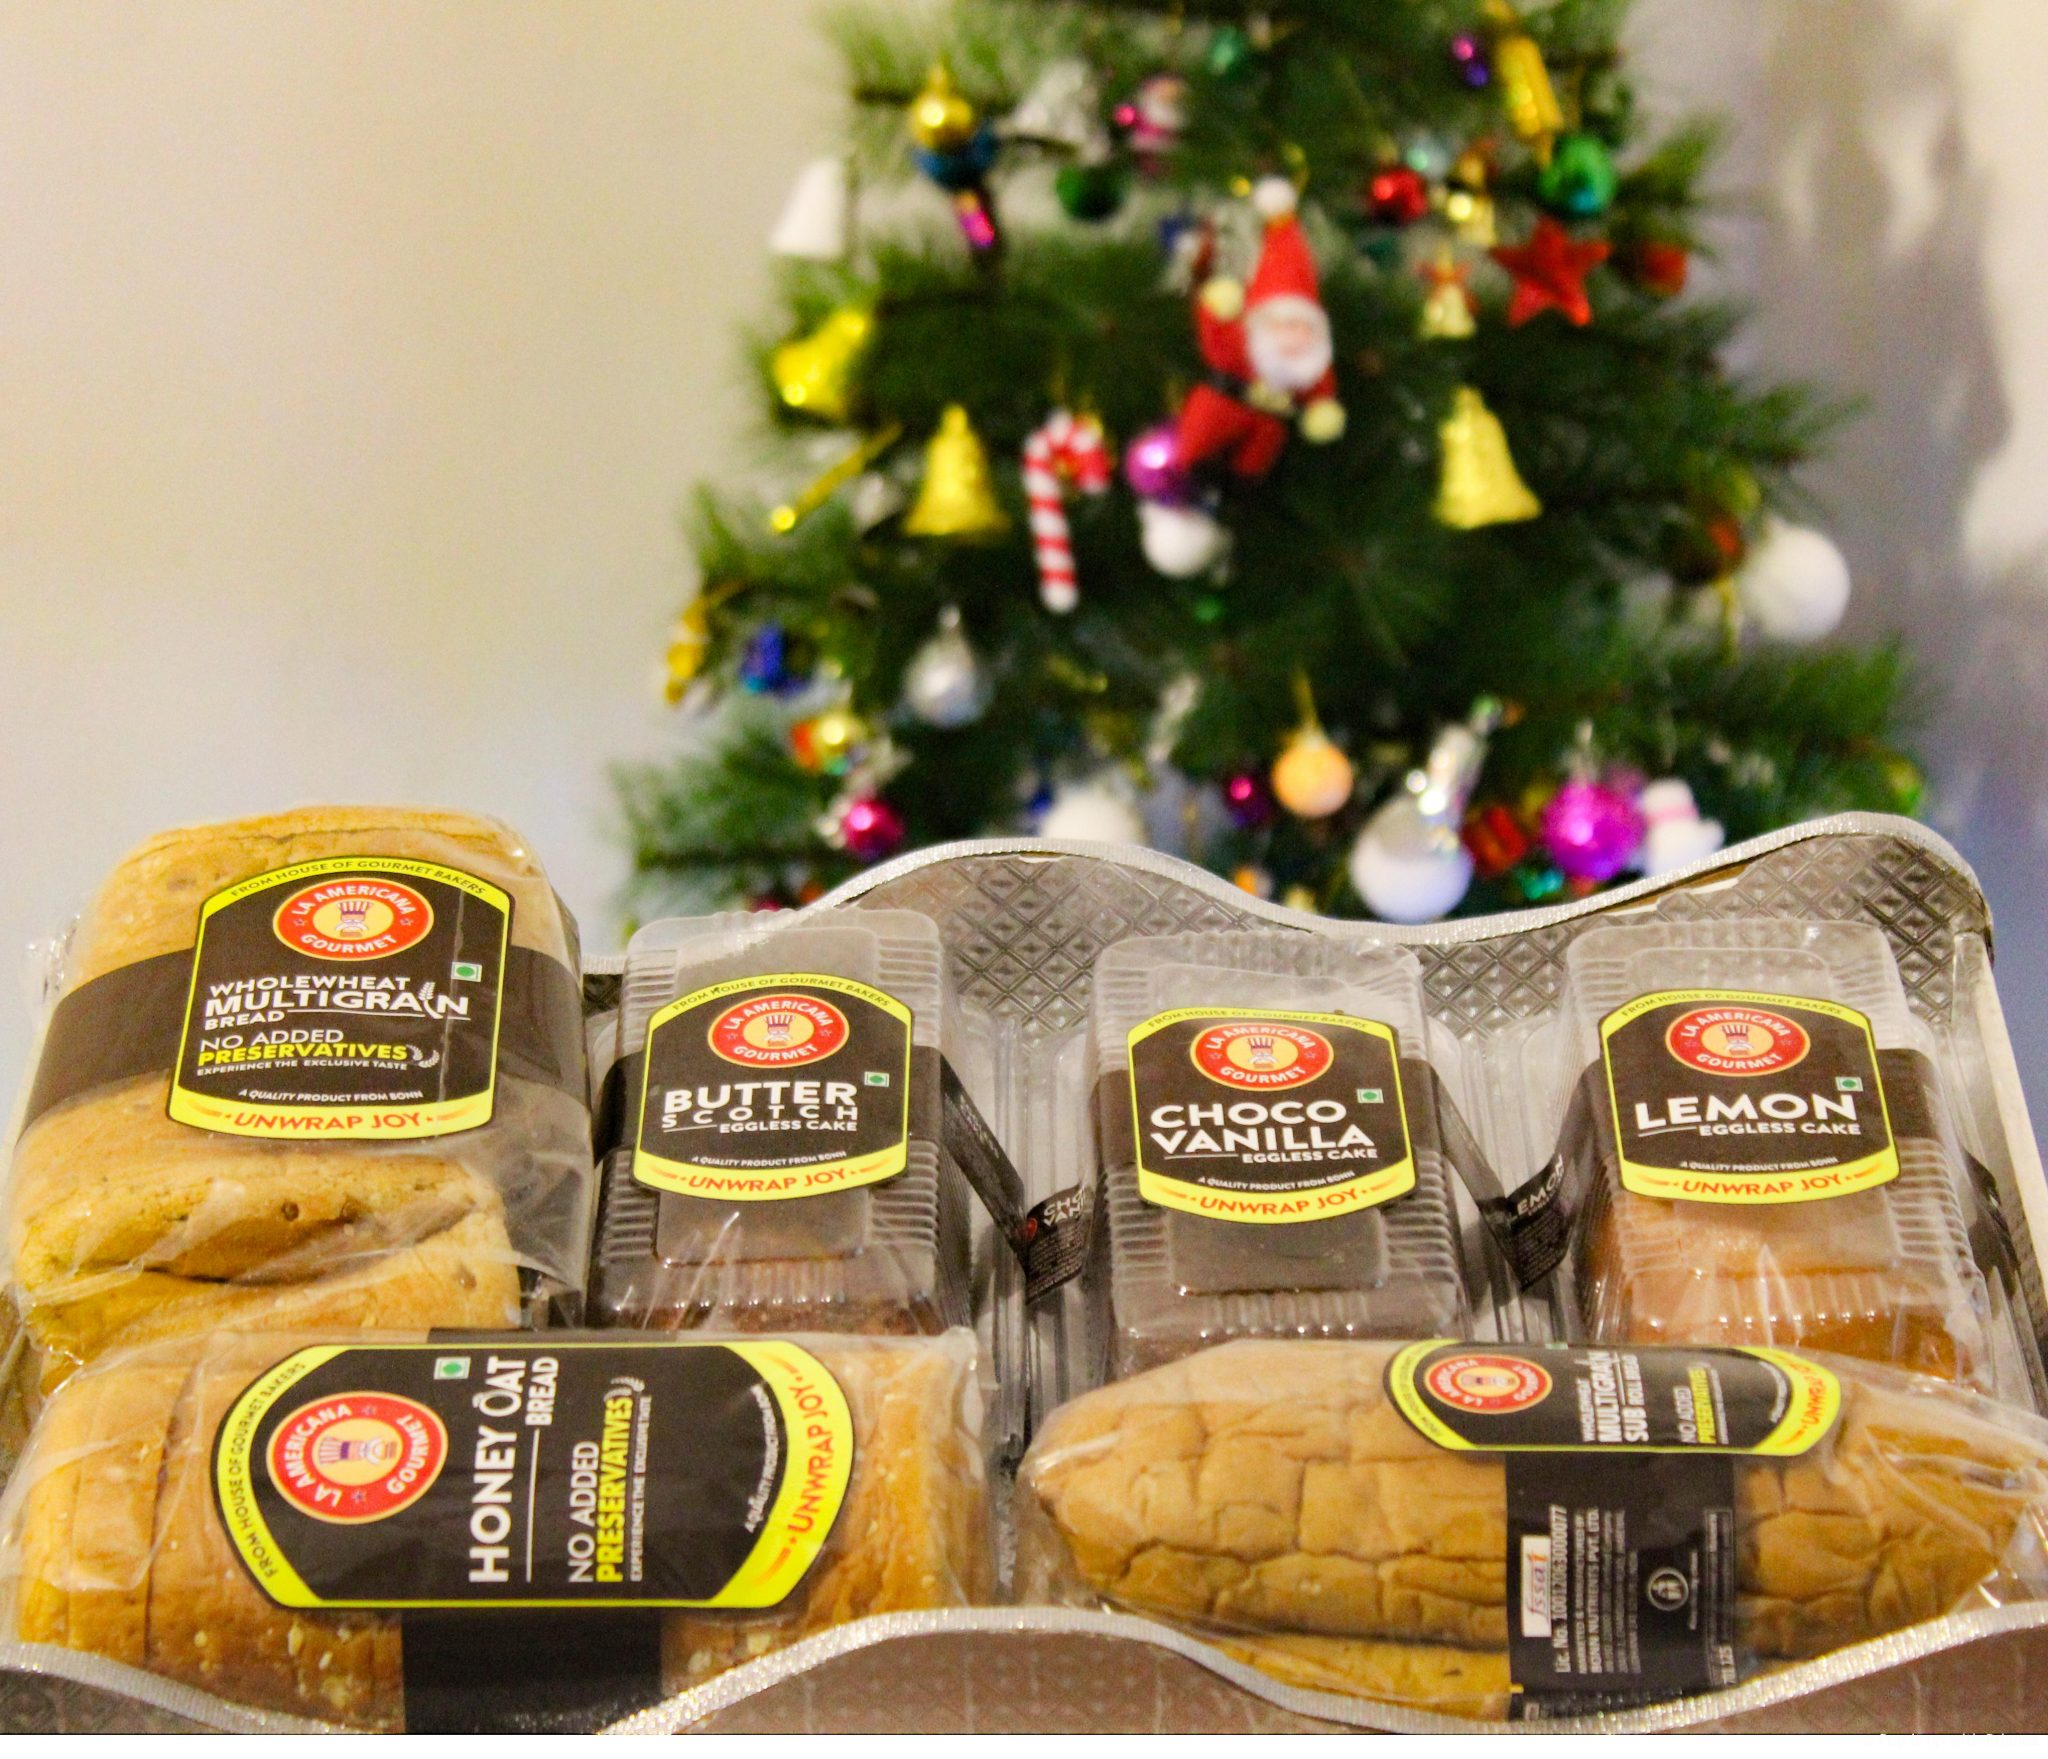 La Americana gourmet range from Bonn India - This Christmas Spread Joy and Gift the Basket of Health from La Americana Gourmet Range by Bonn India